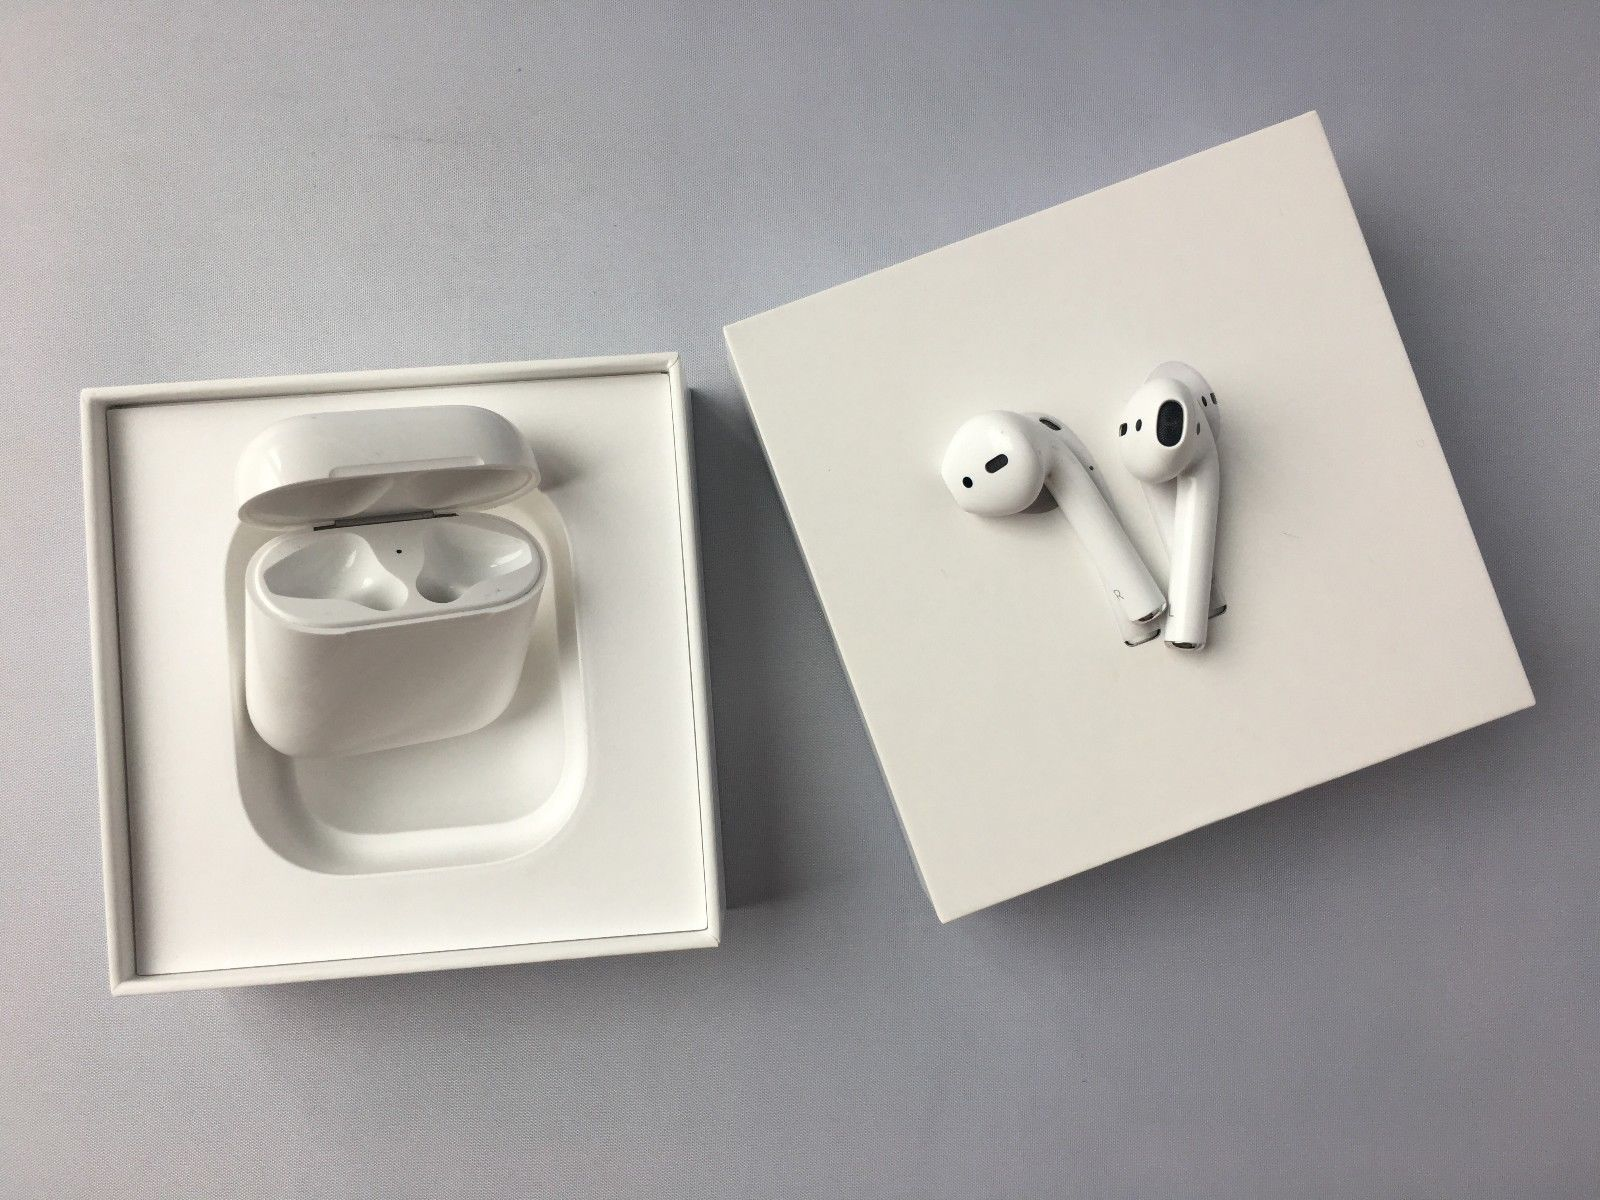 Pin by Jaclyn Oliver on Airpods in 2019 | Apple products